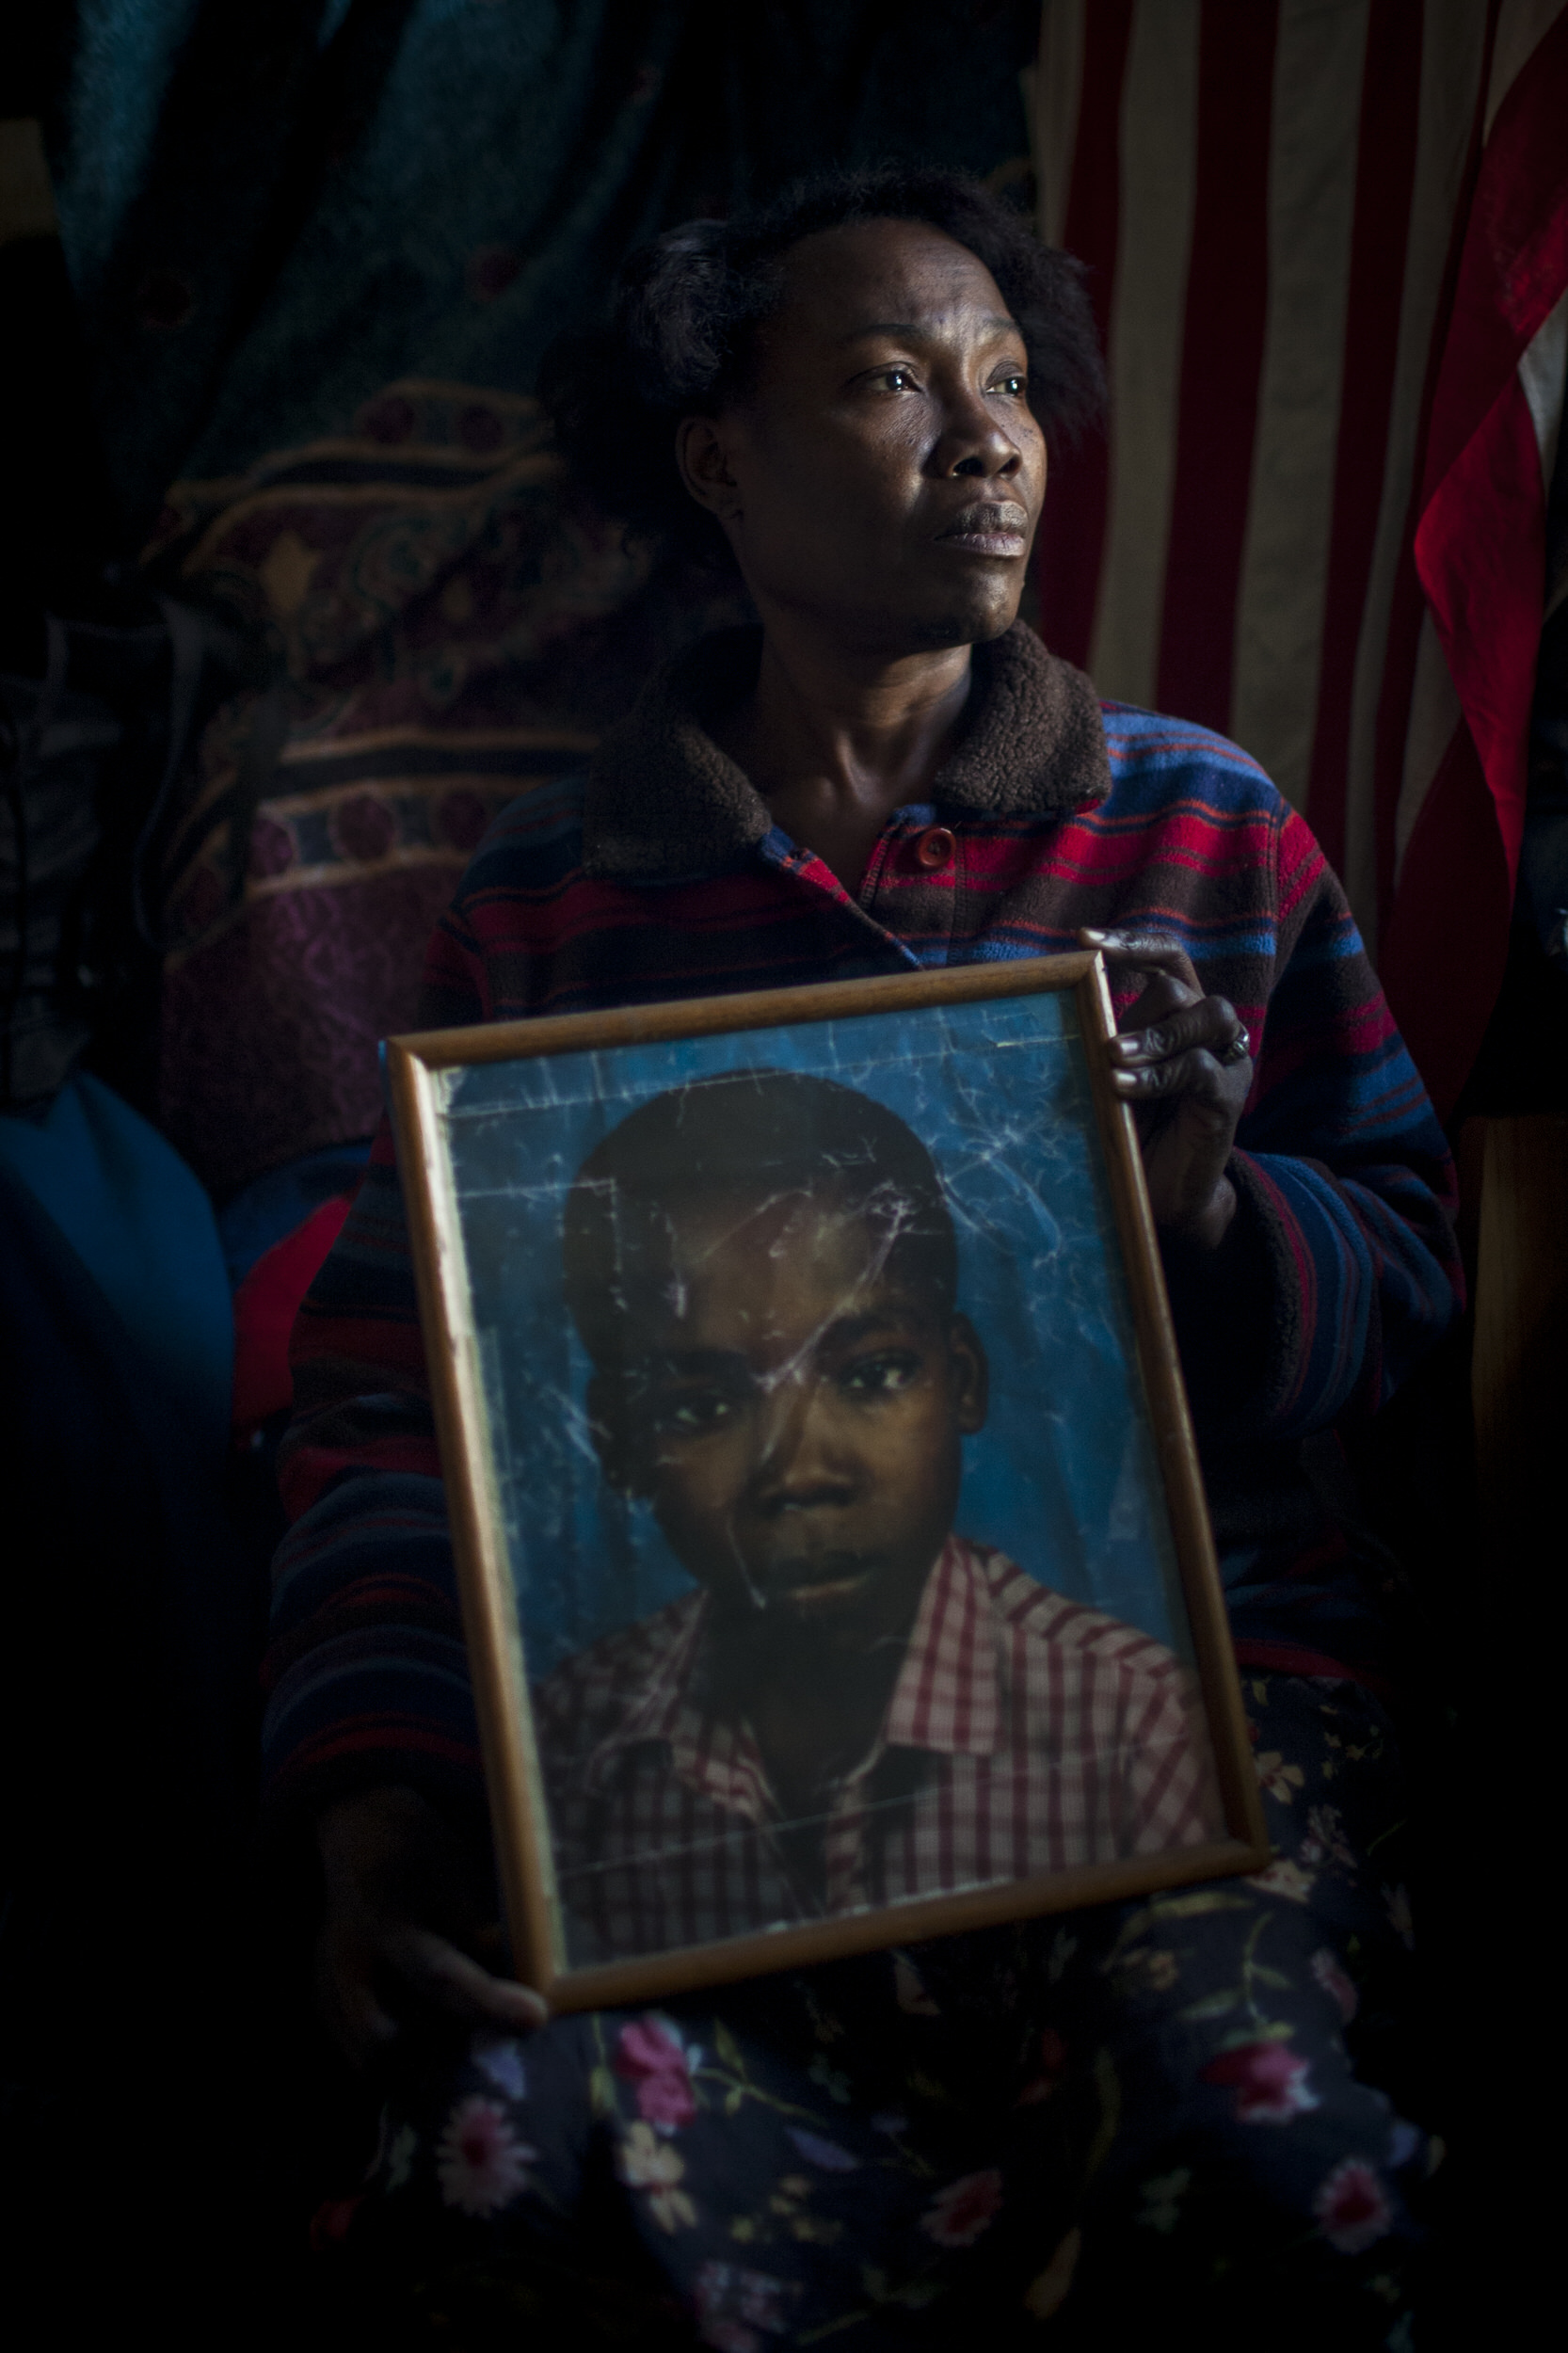 A Brooklyn woman holds a photo of her missing son, eventually found safe, after a devastating earthquake struck Haiti in 2010.